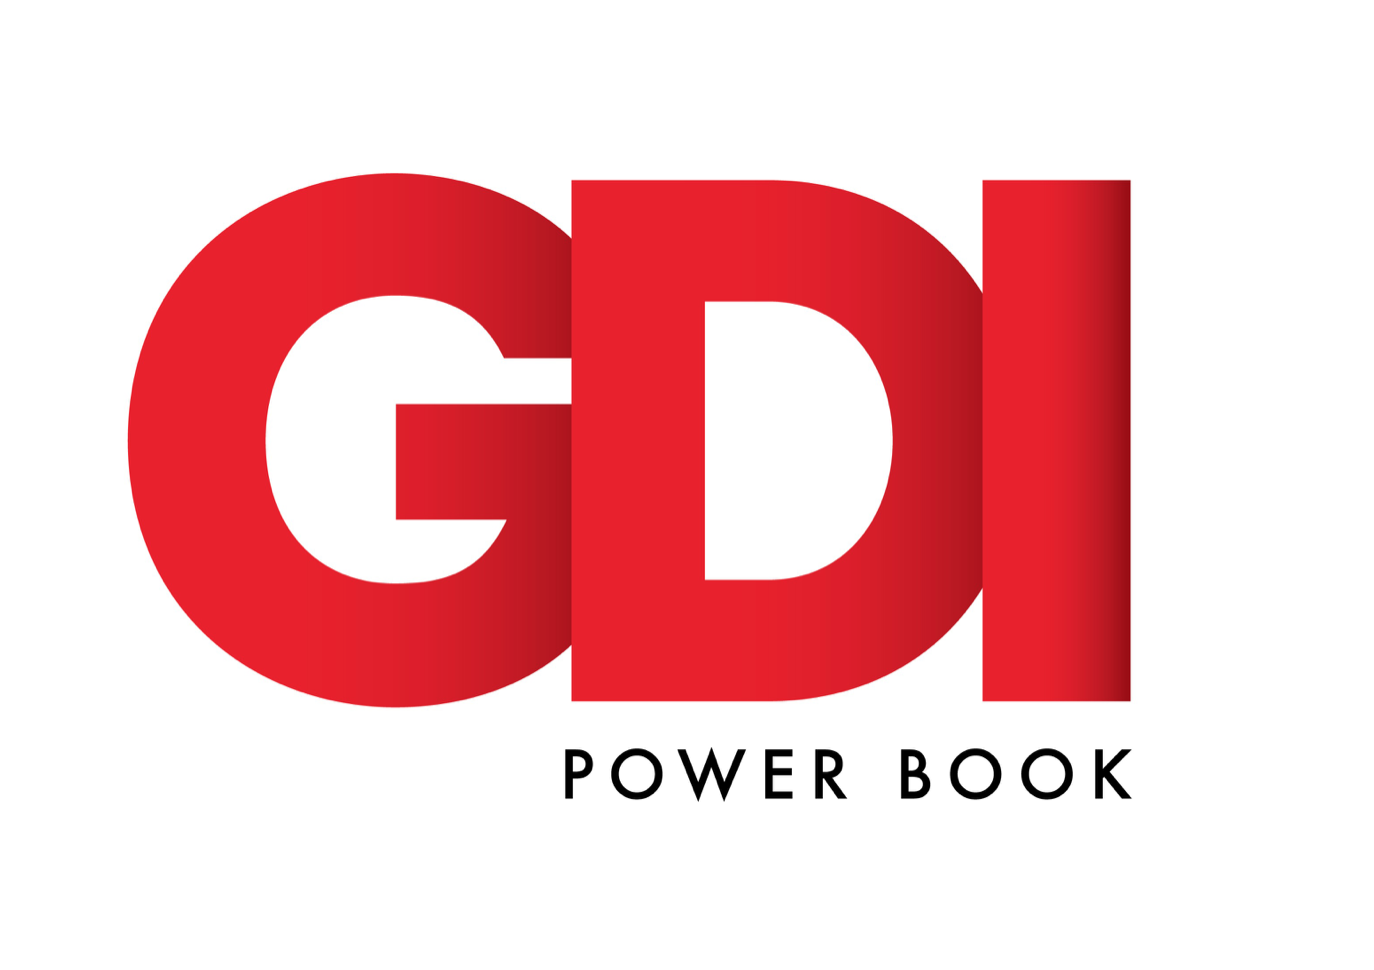 Global Dating Insights to Publish 'Power Book 2021' on 15th February!